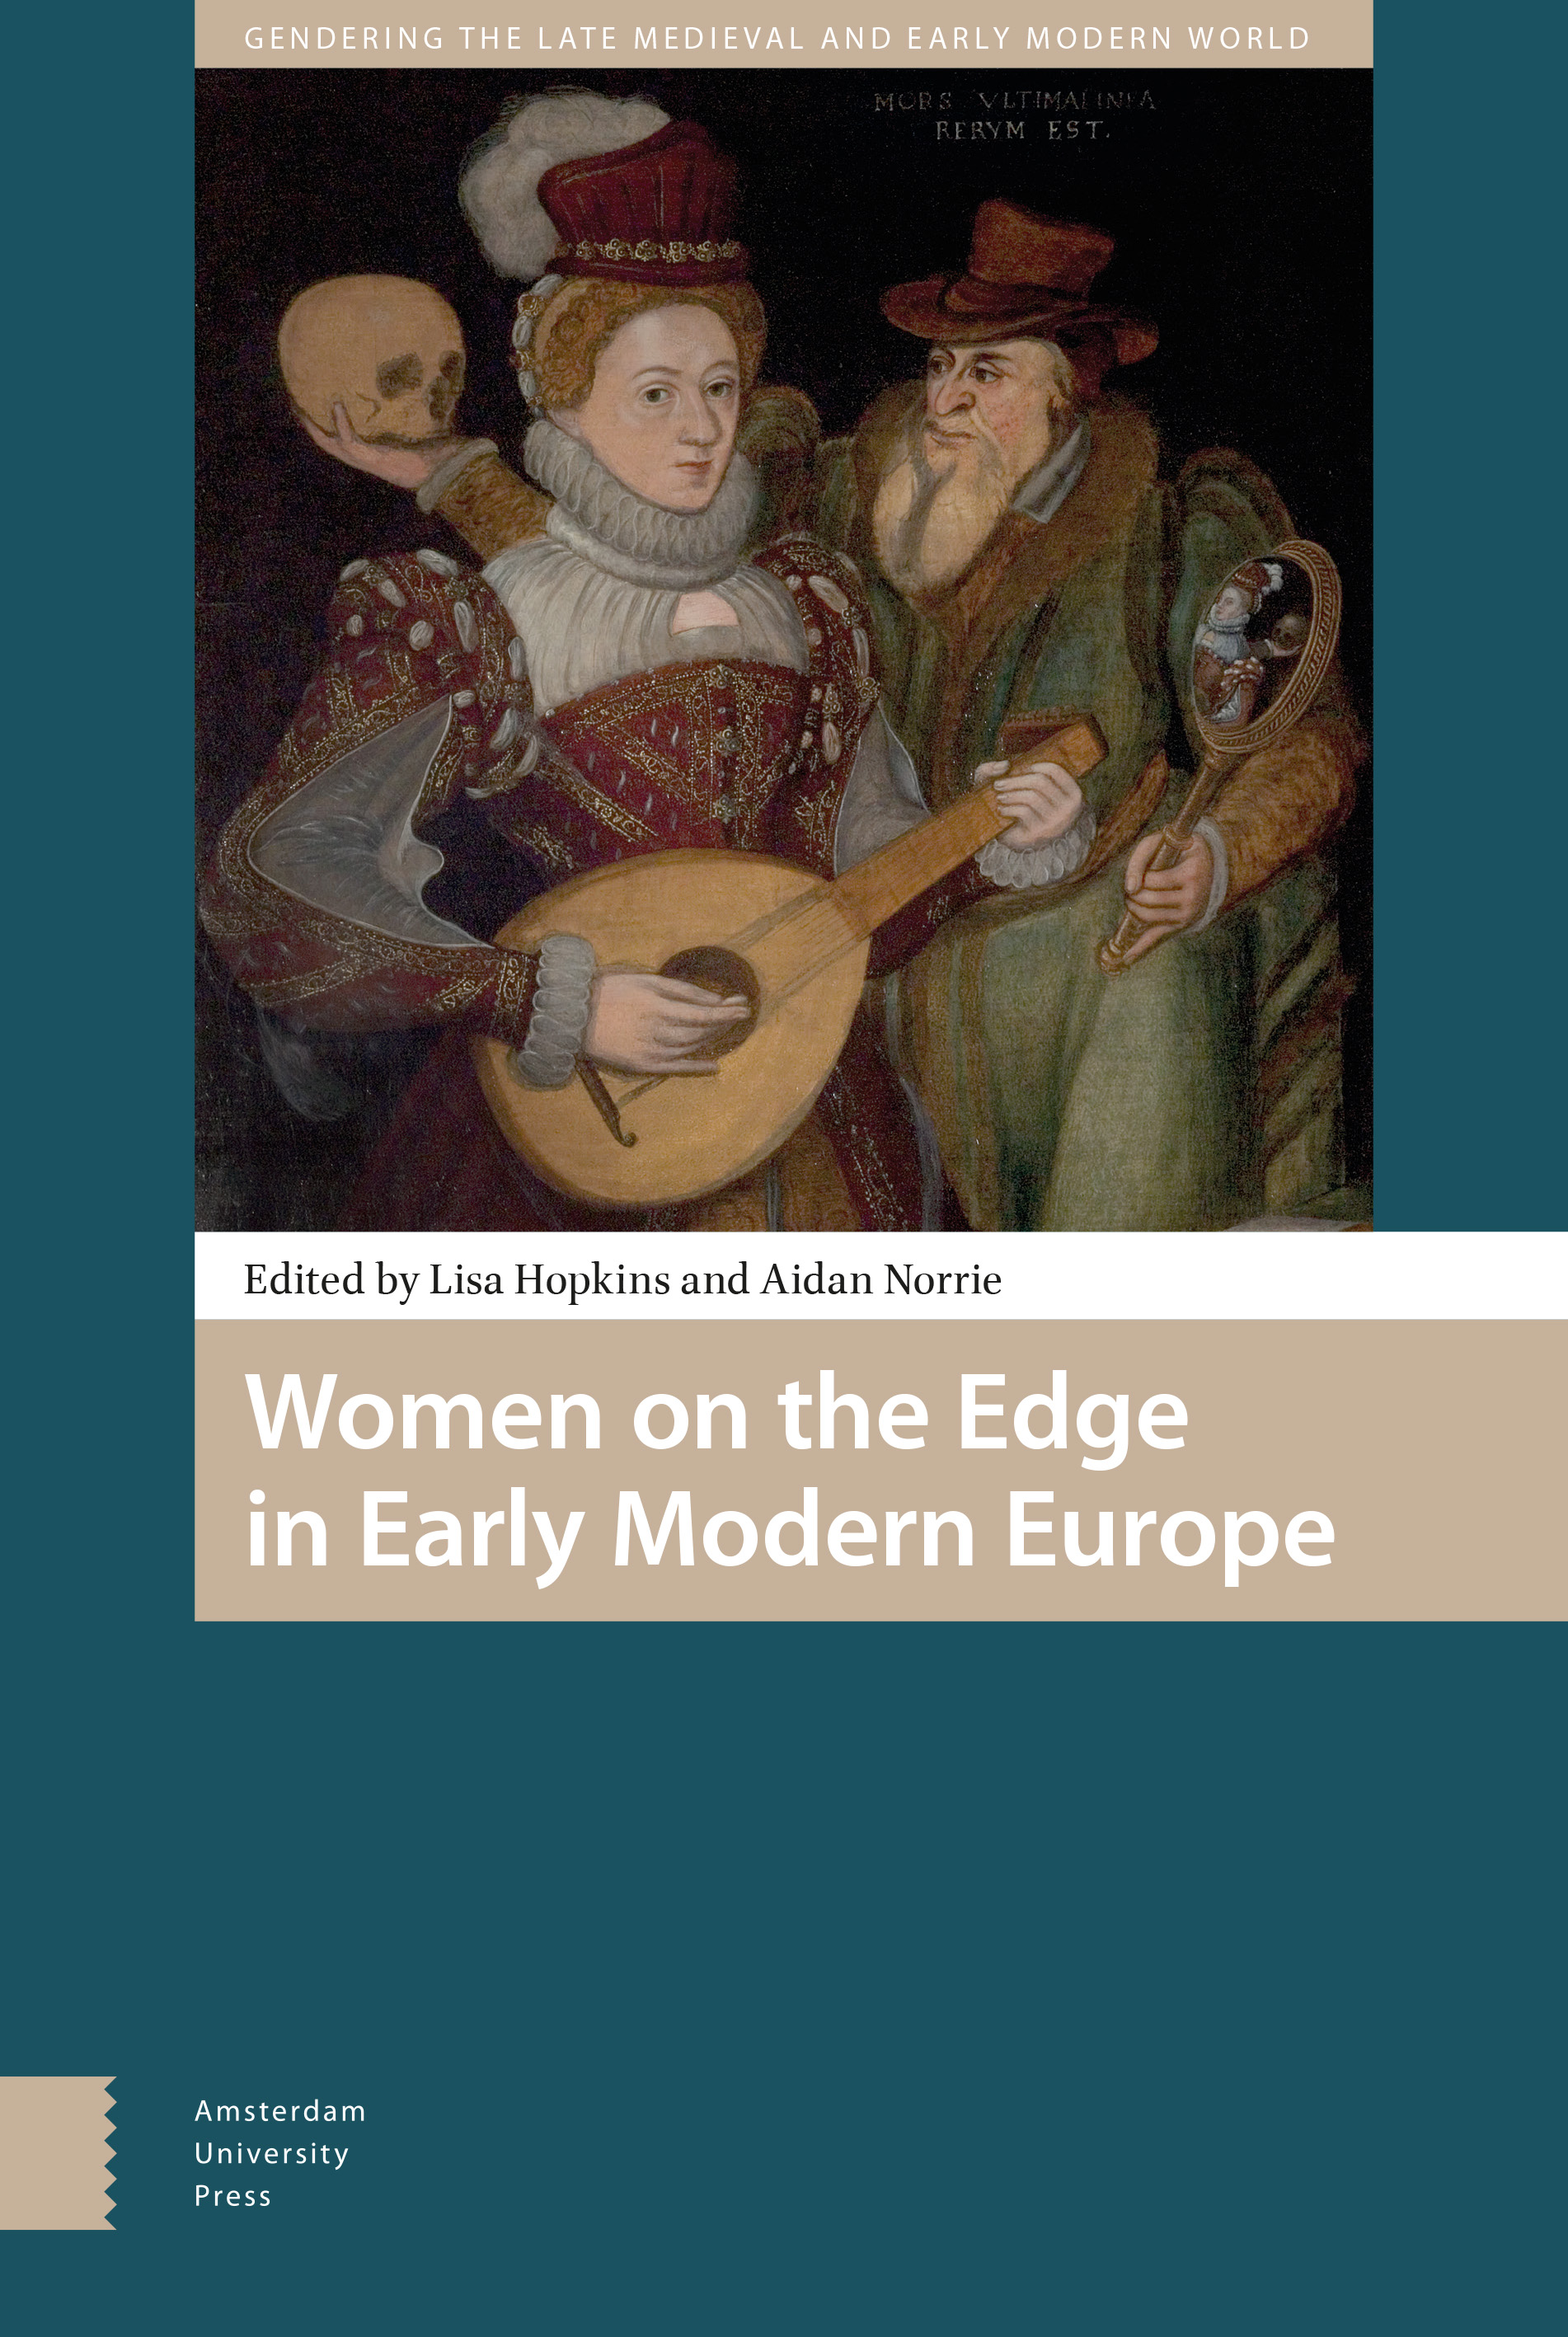 Book cover for Women on the Edge in Early Modern Europe